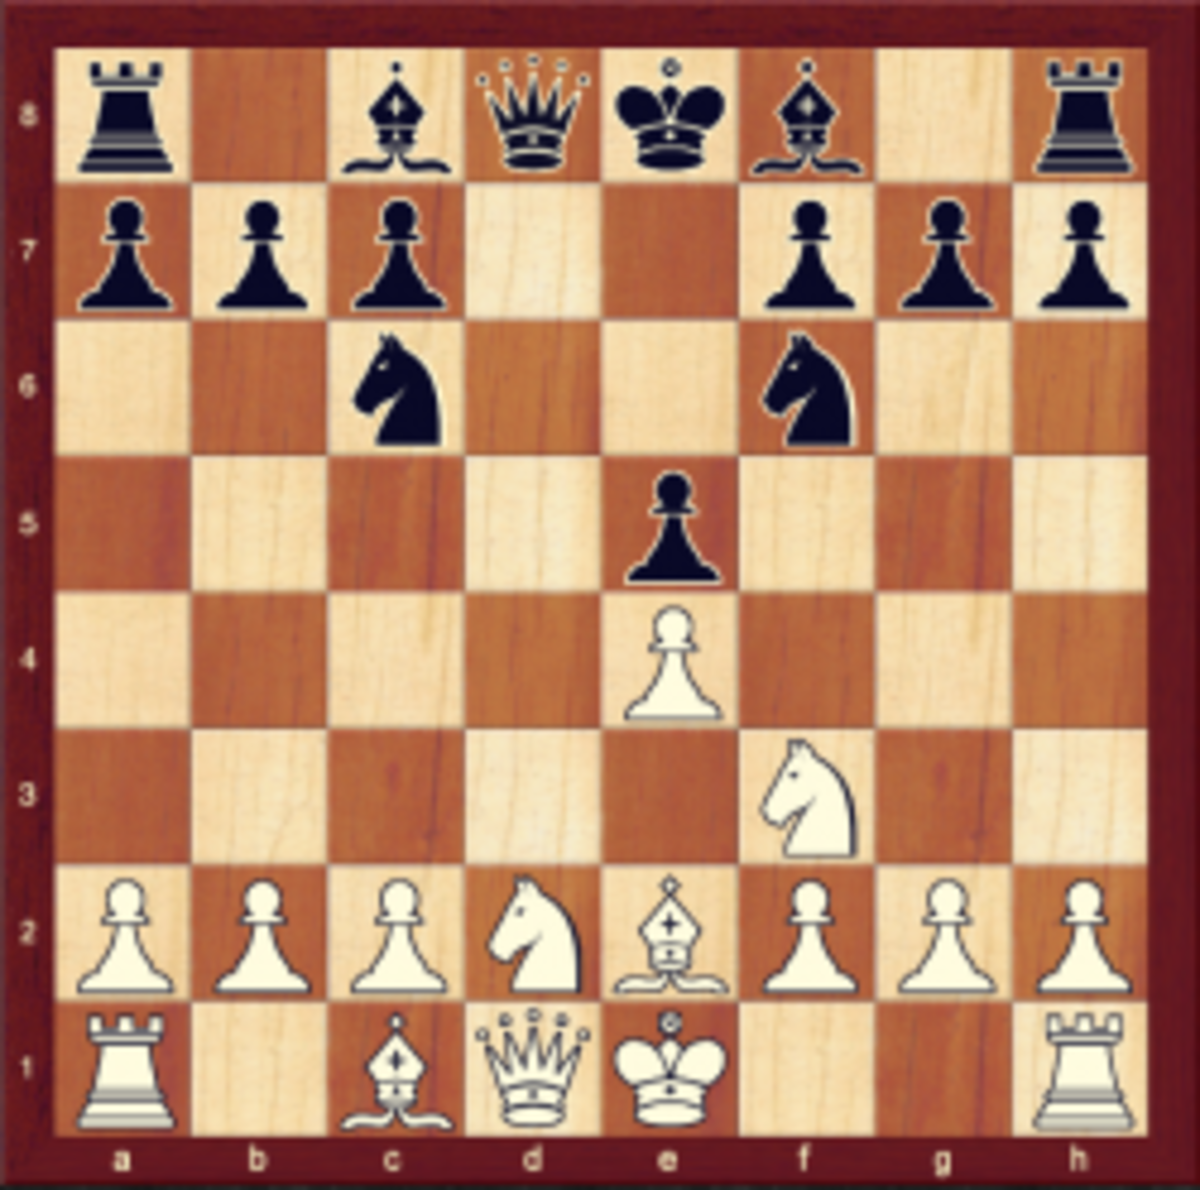 Position after 6. dxe4